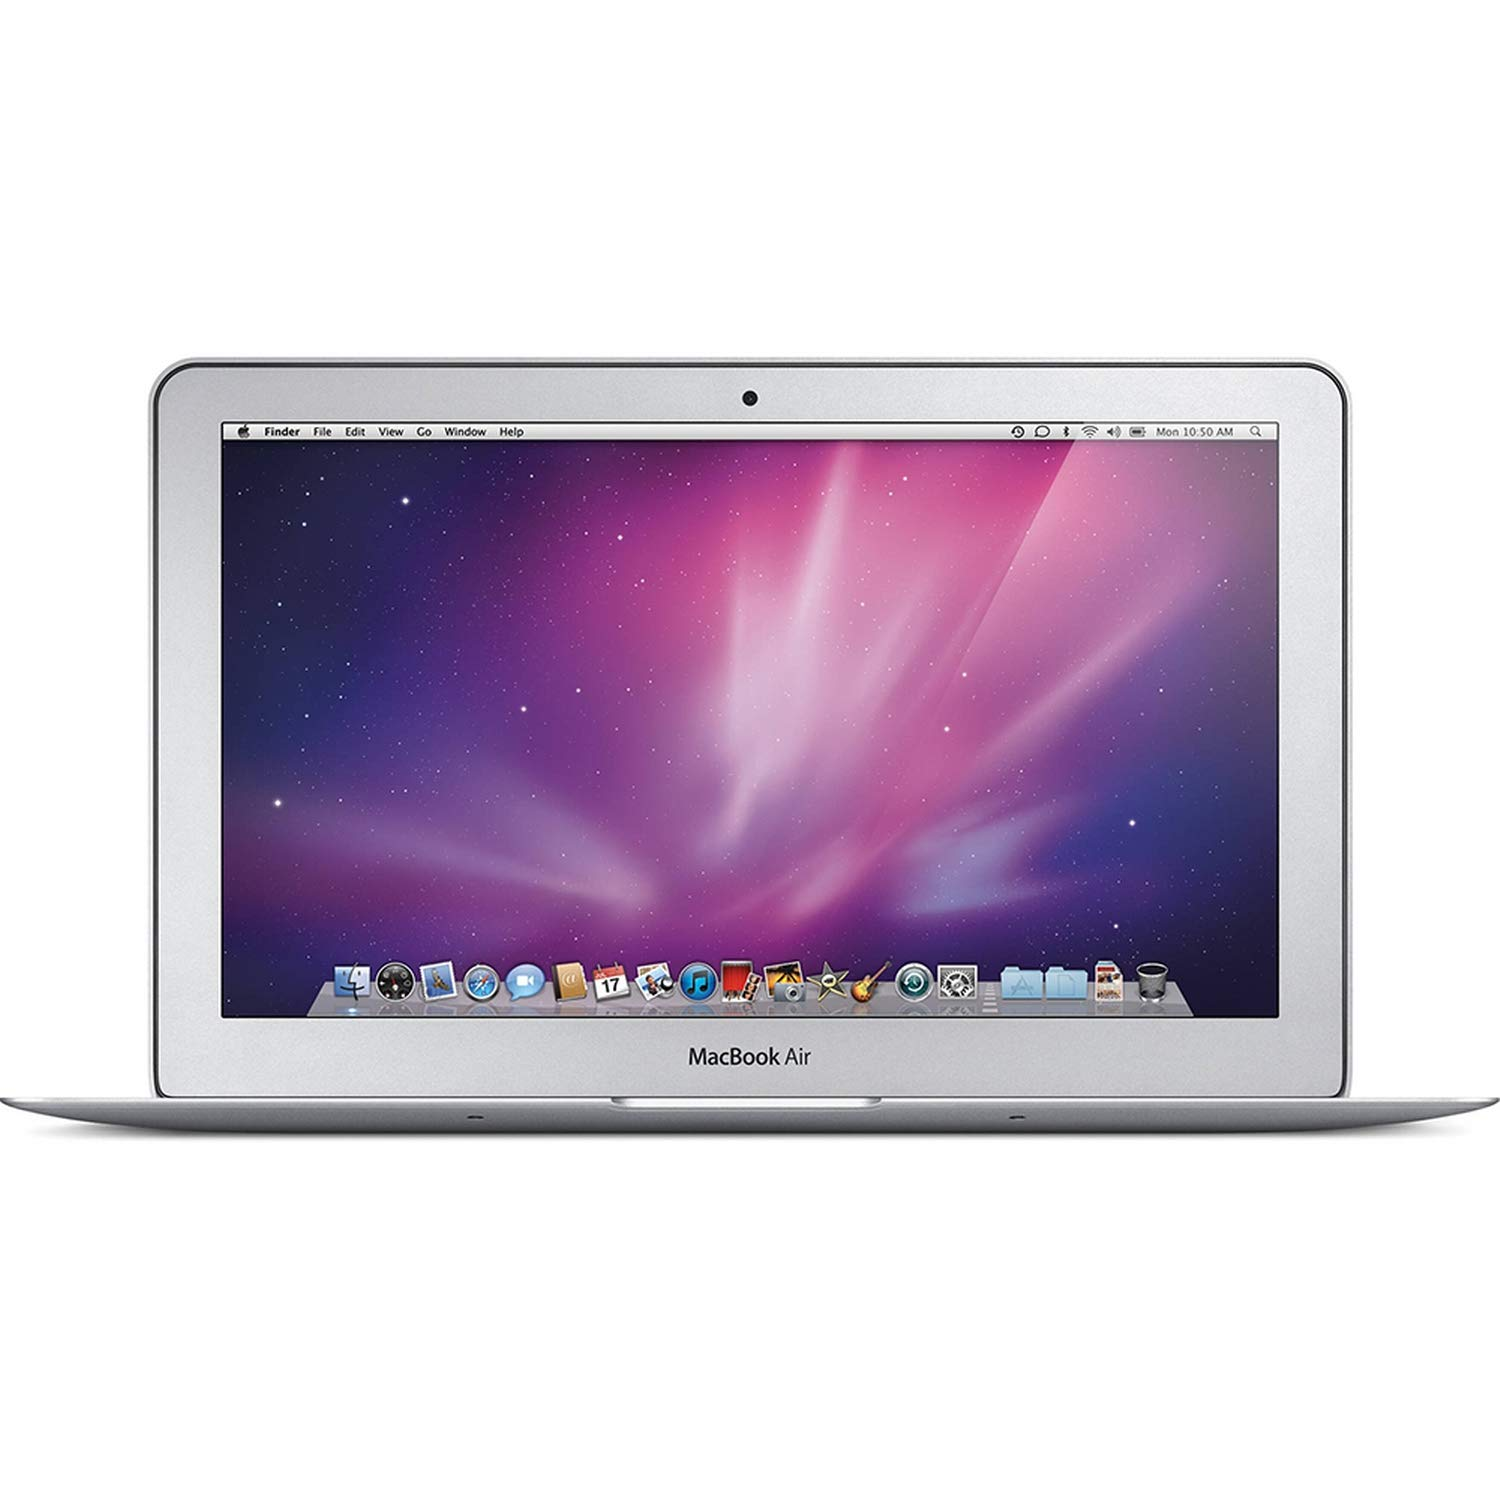 Apple MacBook Air MC505LL/A Intel Core Duo SU9400 X2 1.4GHz 2GB 60GB SSD 11.6in, Silver (Renewed)